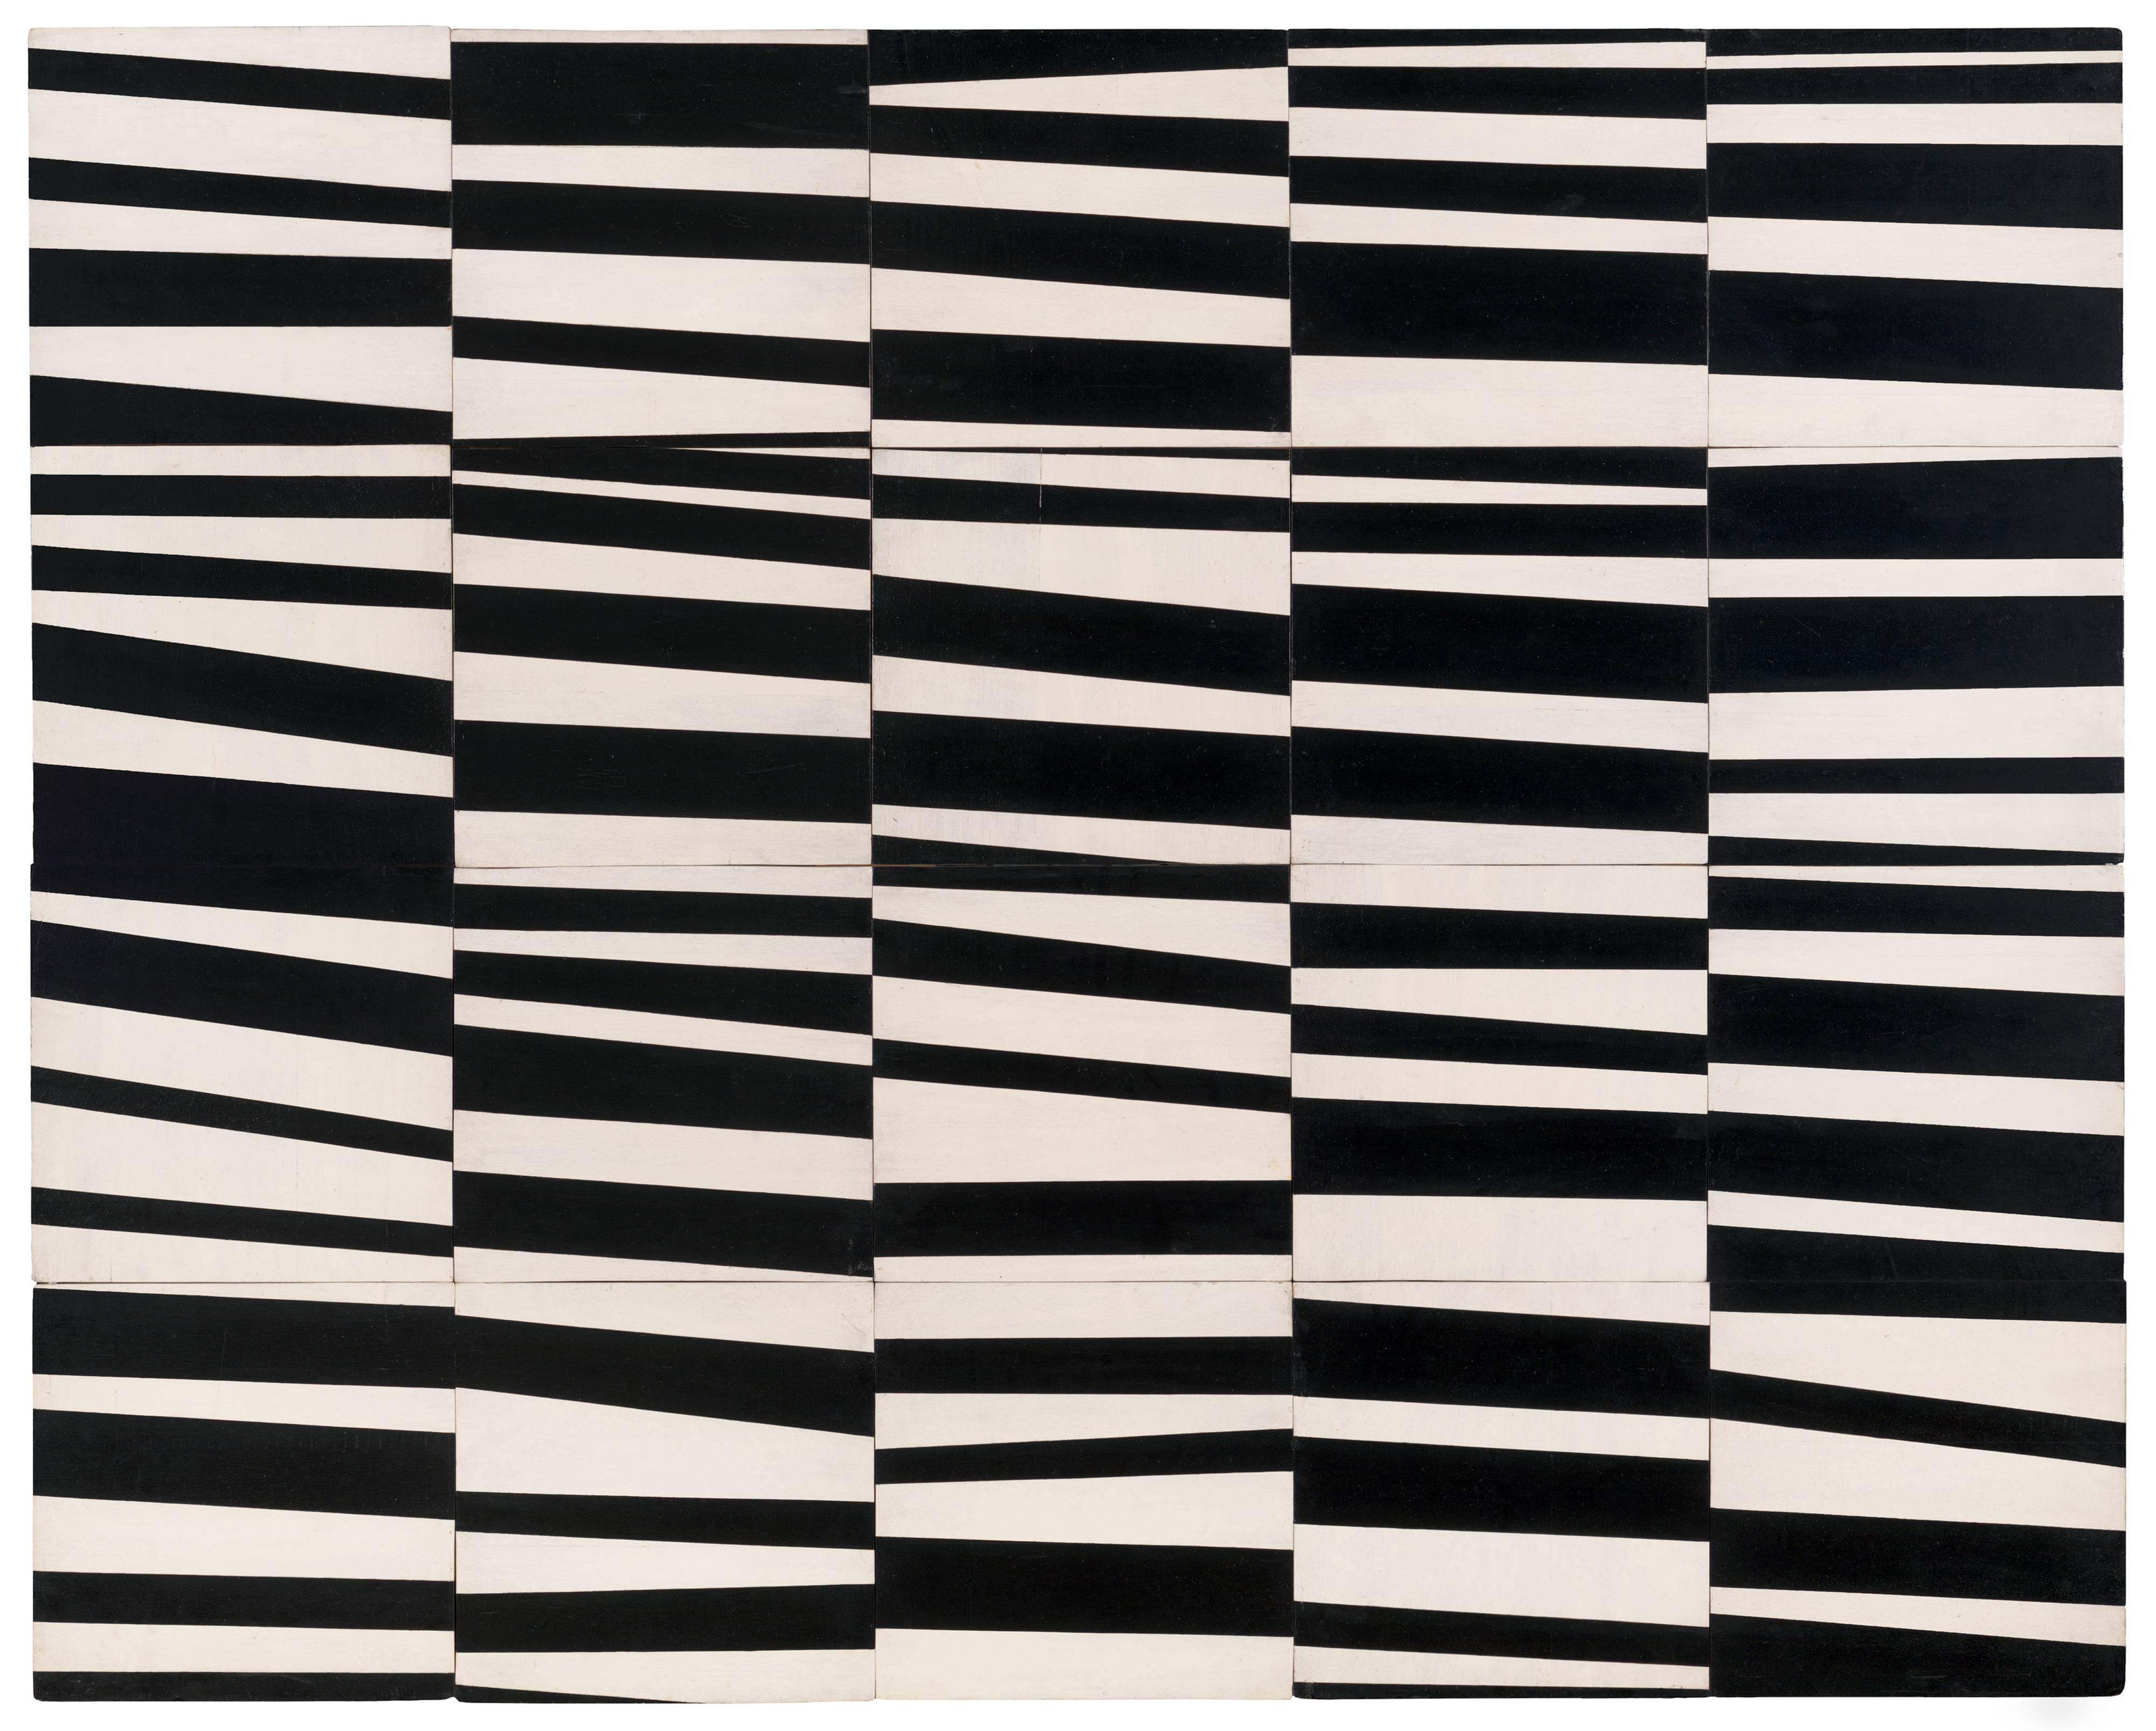 <p>This abstract painting features twenty separate panels, each approximately fourteen inches square, joined together to create a single rectangular piece five panels wide and four panels tall. Each panel is painted with irregular black and white stripes, all roughly horizontal or on slight angles. In some instances, the disjointed stripes line up with those on neighboring panels, and match their width or trajectory, but in most cases they do not. The result is a stark patchwork pattern of severed stripes that create optical illusions of depth and movement.</p>